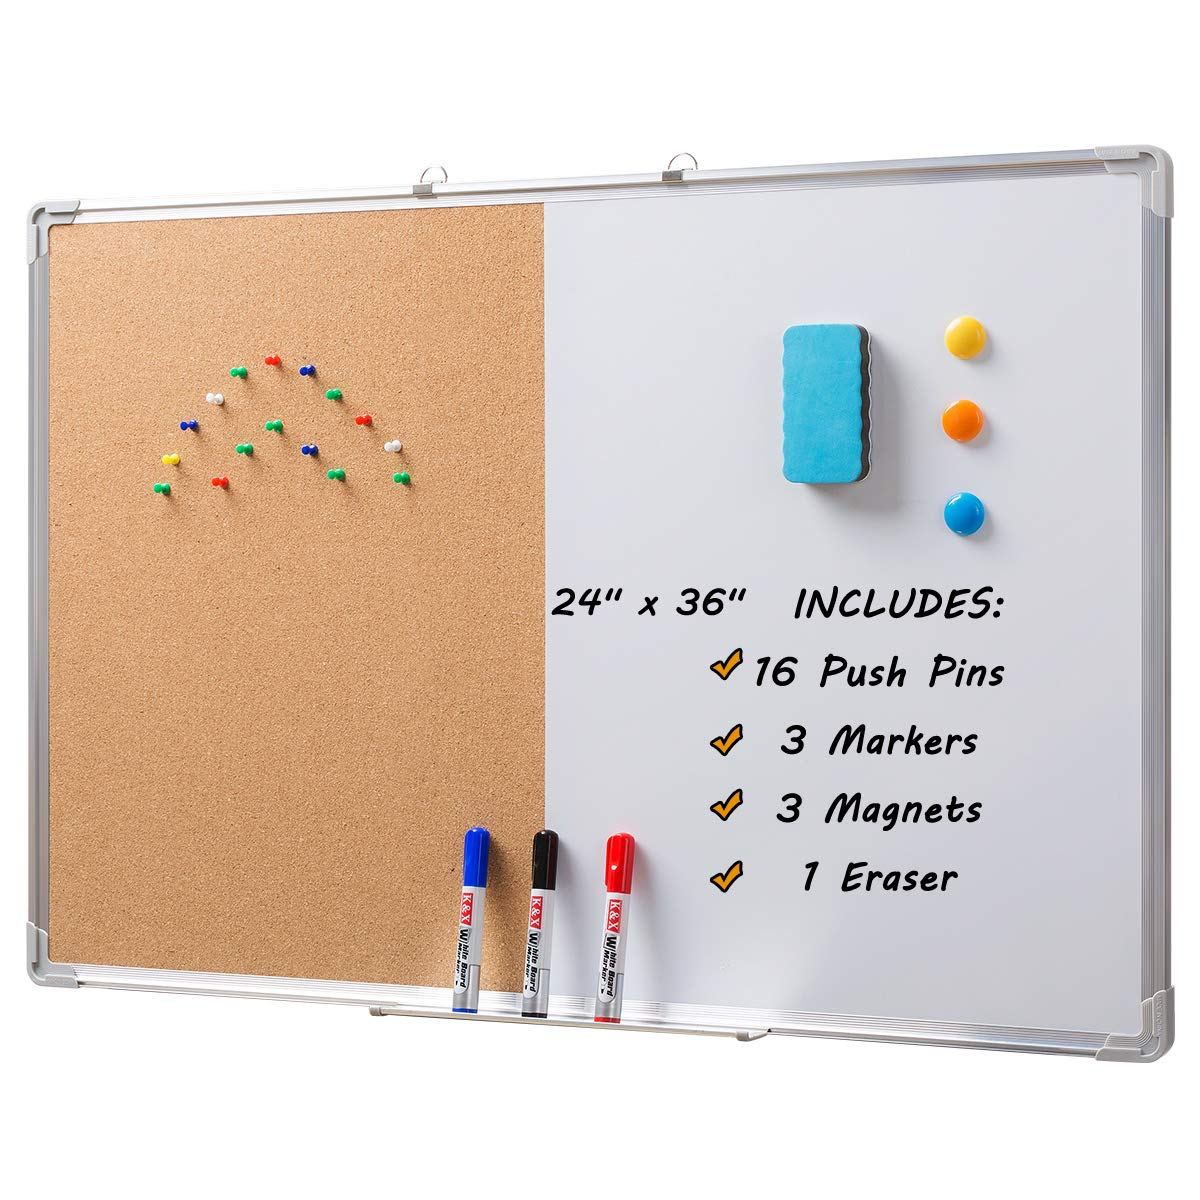 DOEWORKS 36 x 24 Magnetic Whiteboard & Cork Board Combo Board Set, Wall Mounted Notice Bulletin Board Dry Erase/Cork Board Combination with Aluminum Frame